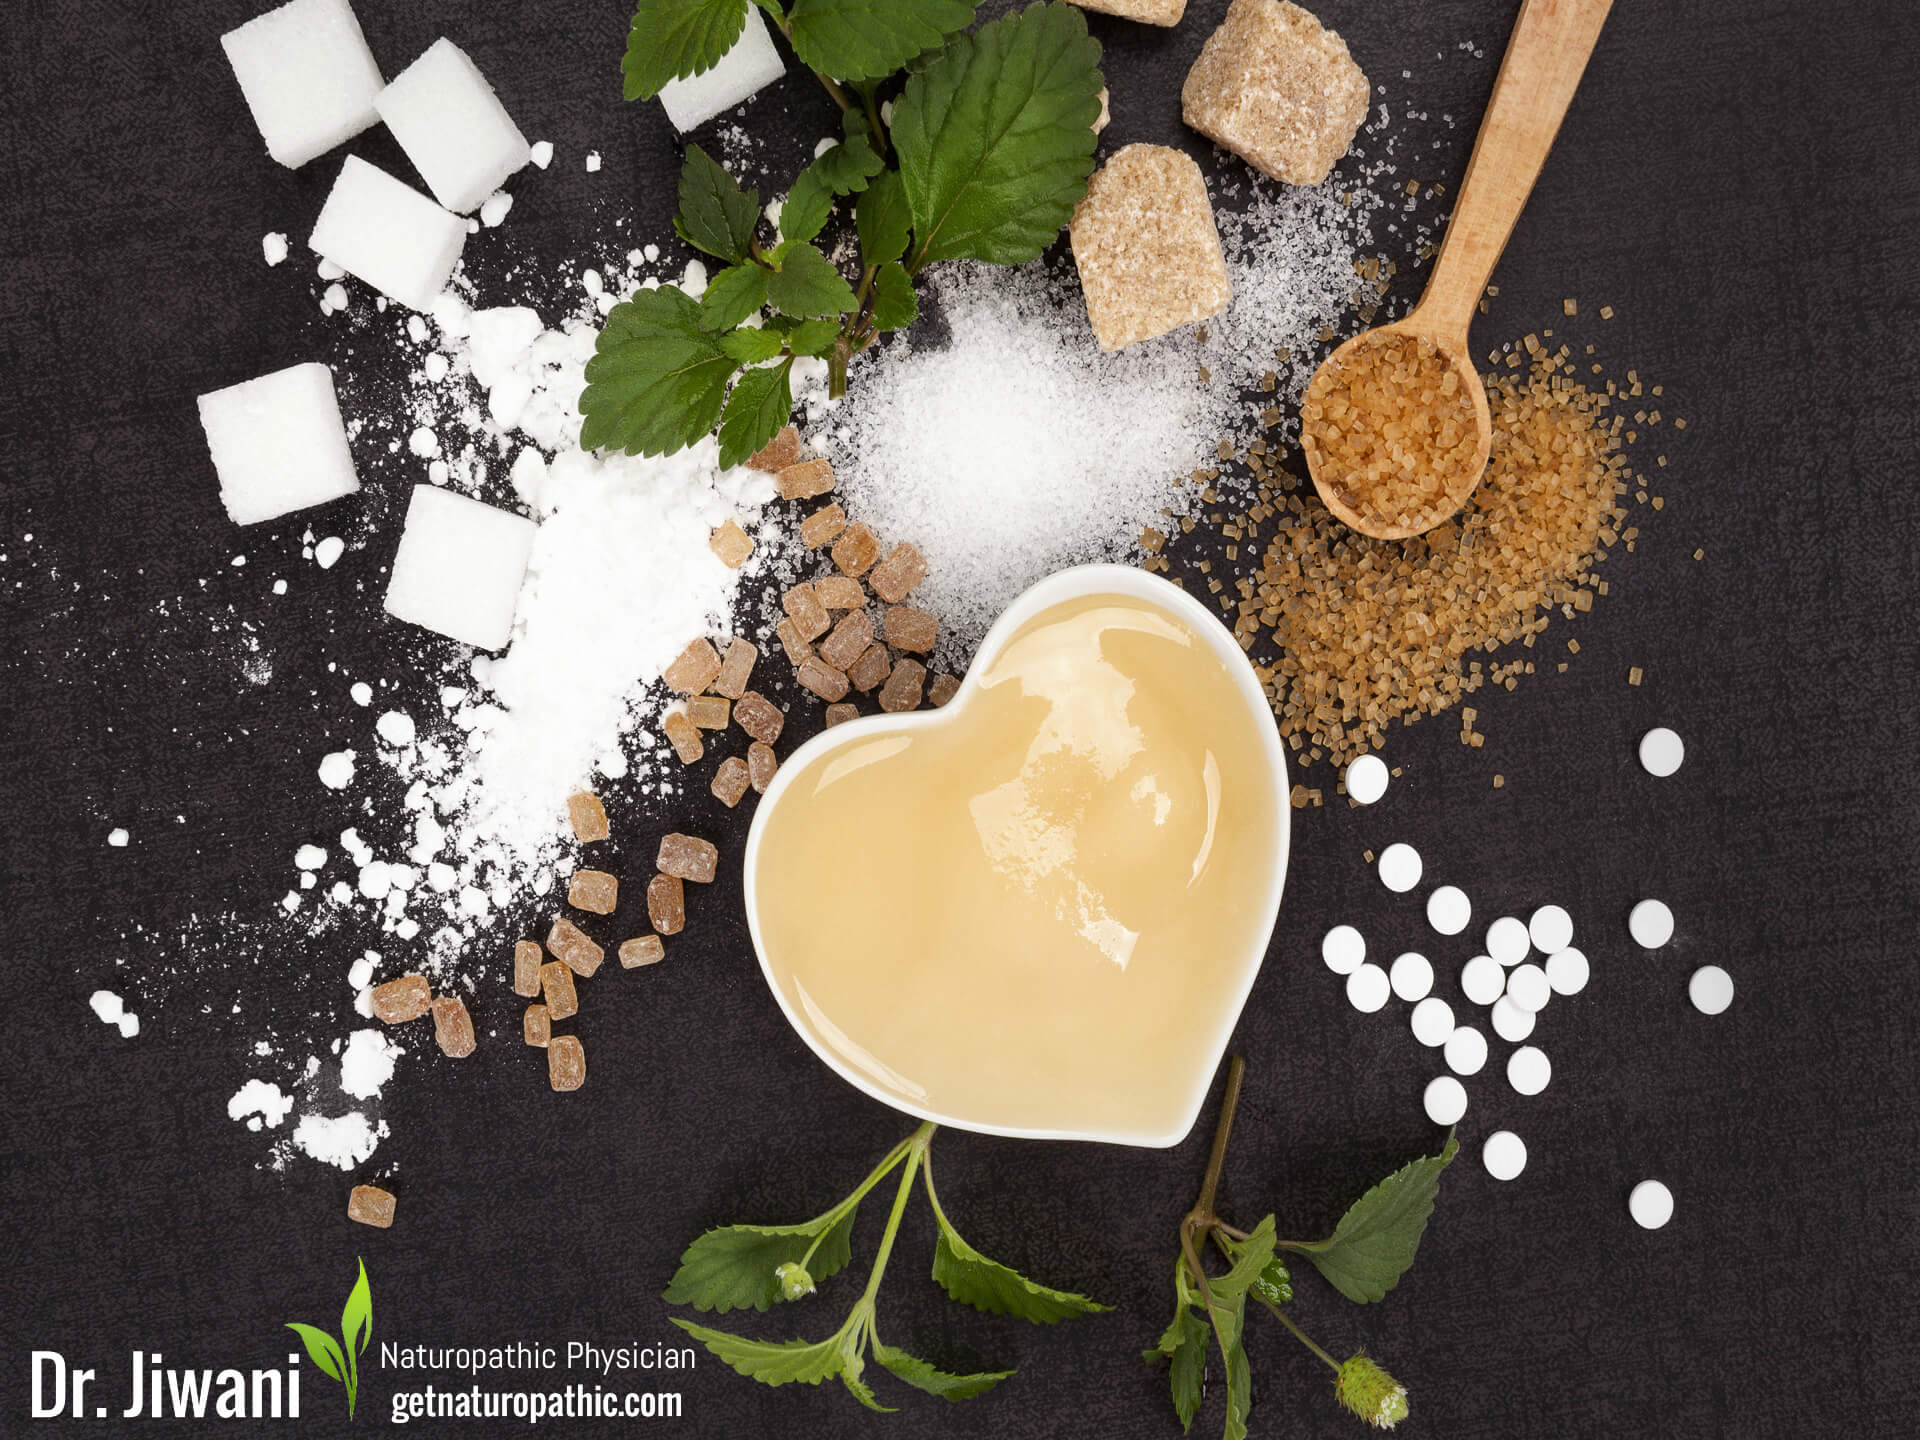 DrJiwani Whole Body Effects Sugar the Sweet Poison The Alarming Ways Sugar Damages Your Body & Brain* | Dr. Jiwani's Naturopathic Nuggets Blog